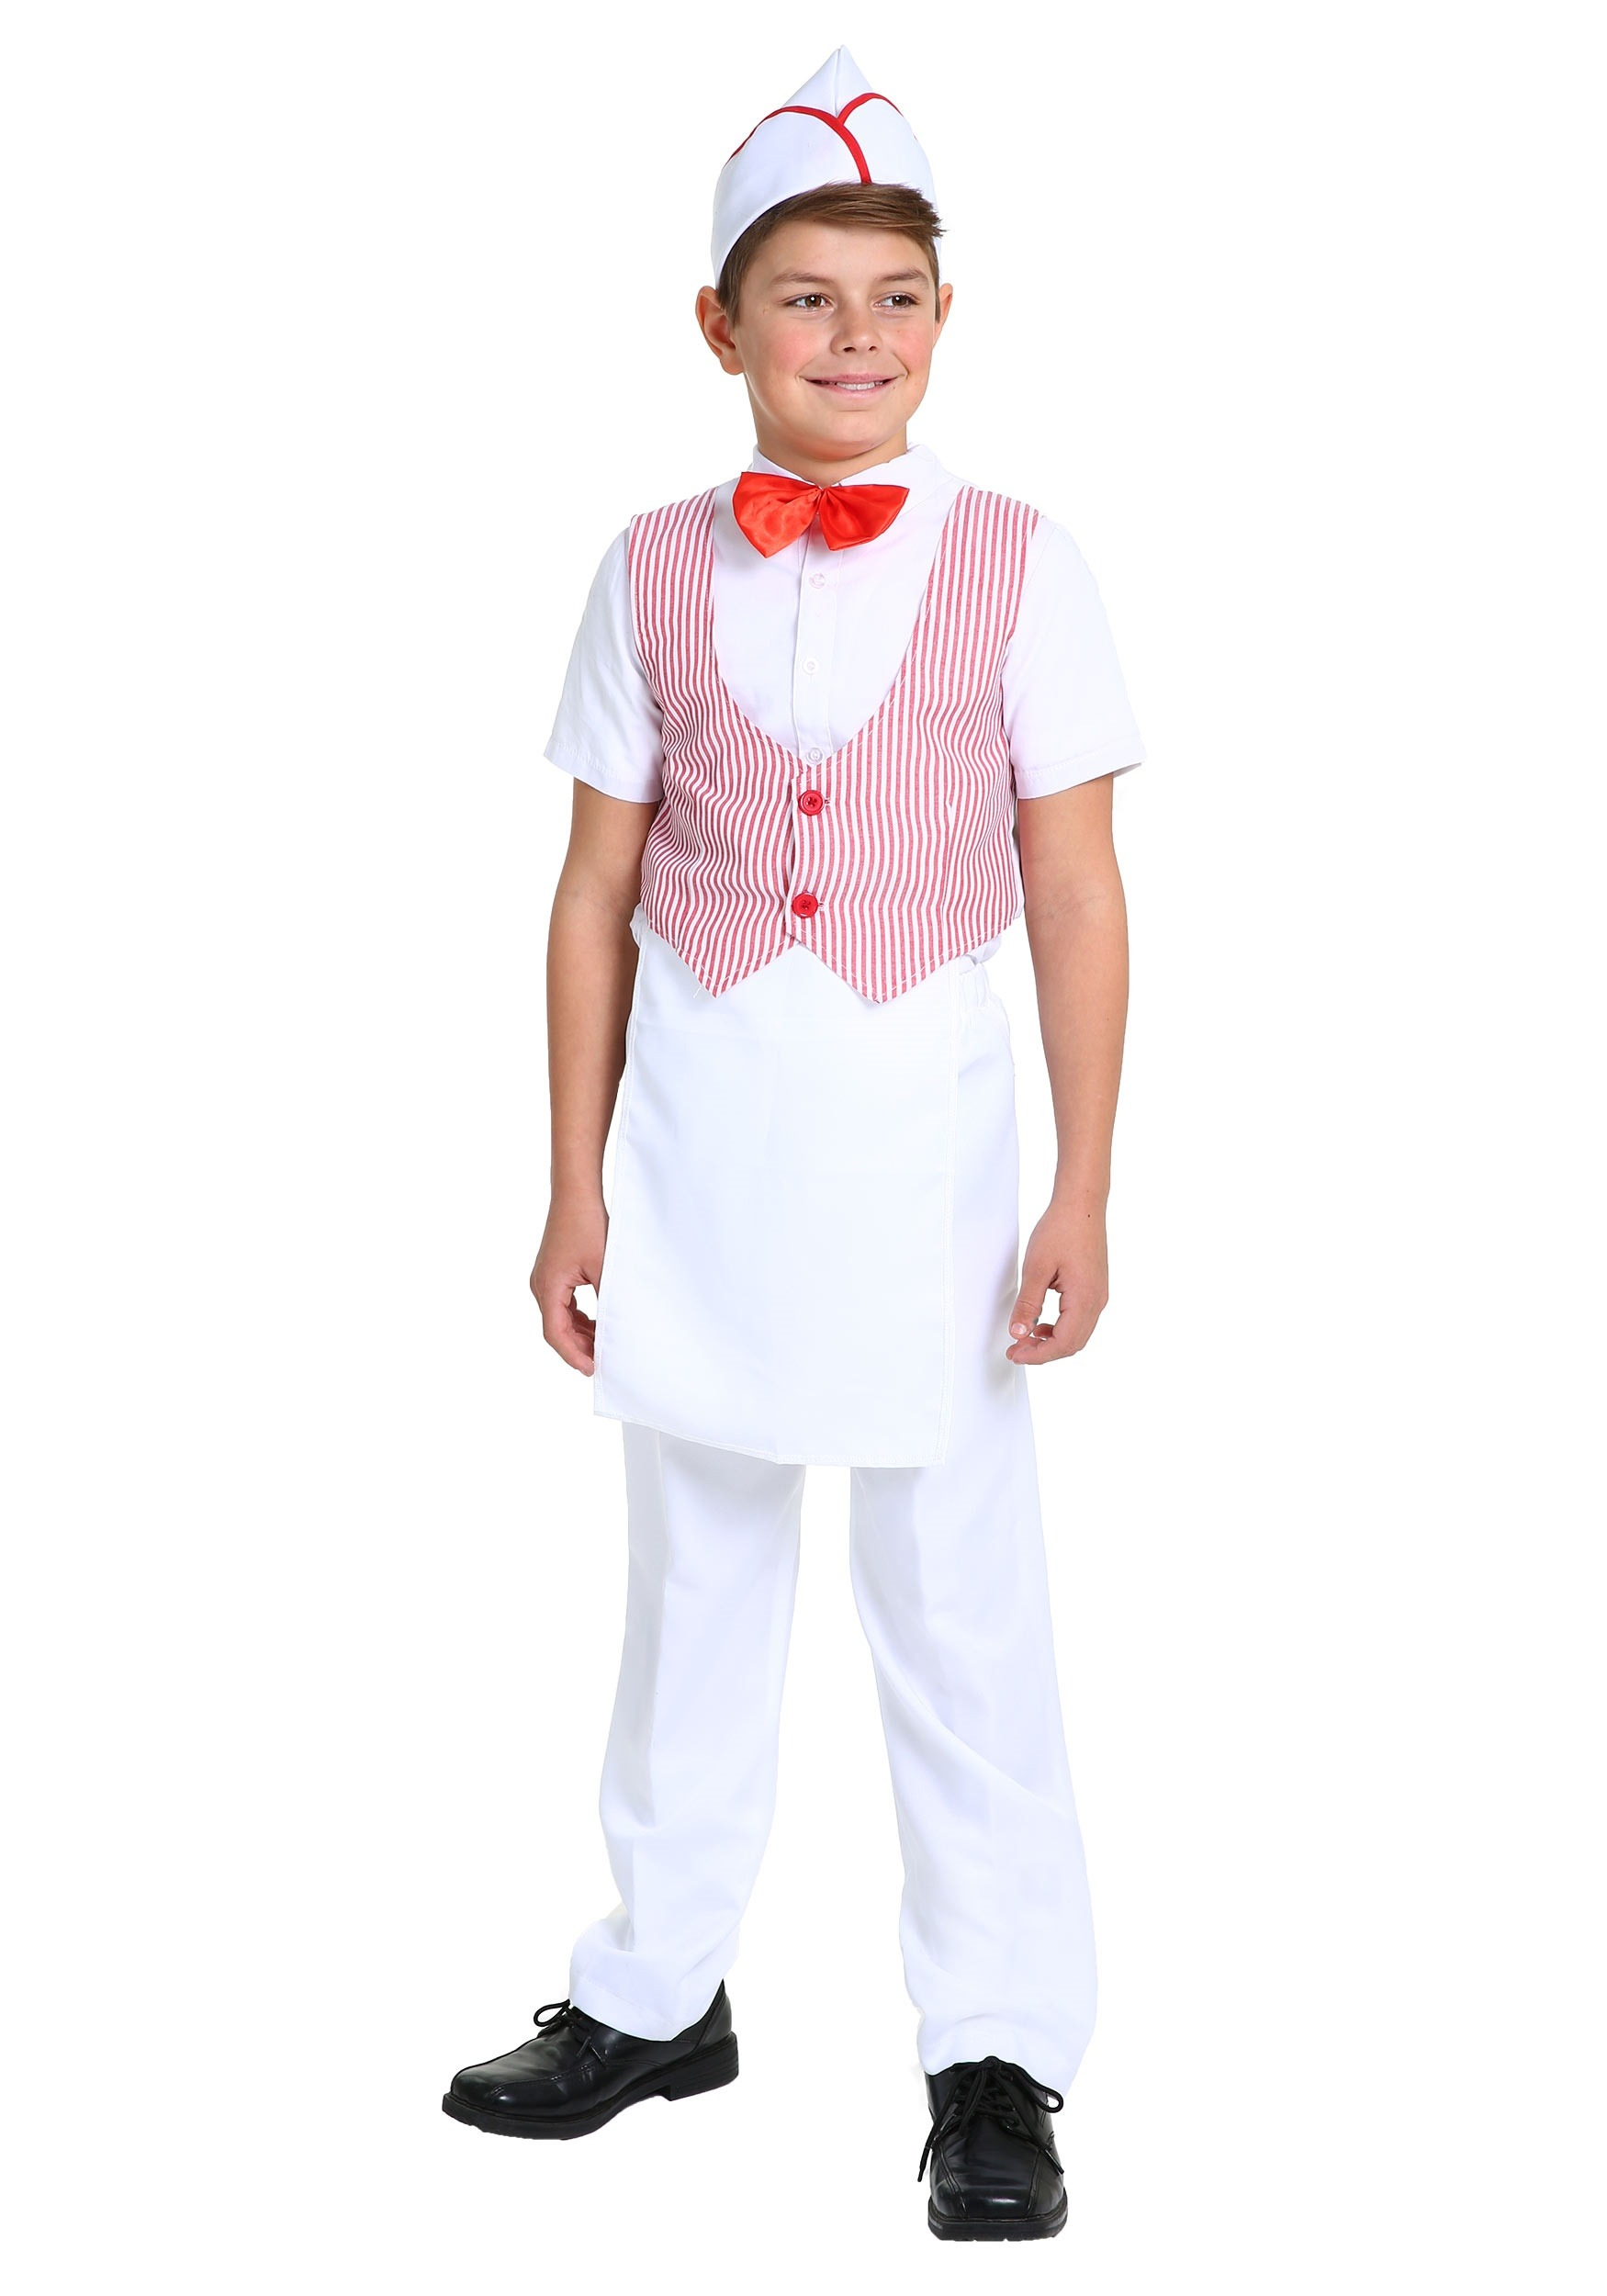 50 Halloween Hair And Makeup Tutorials: 50s Car Hop Costume For Boys